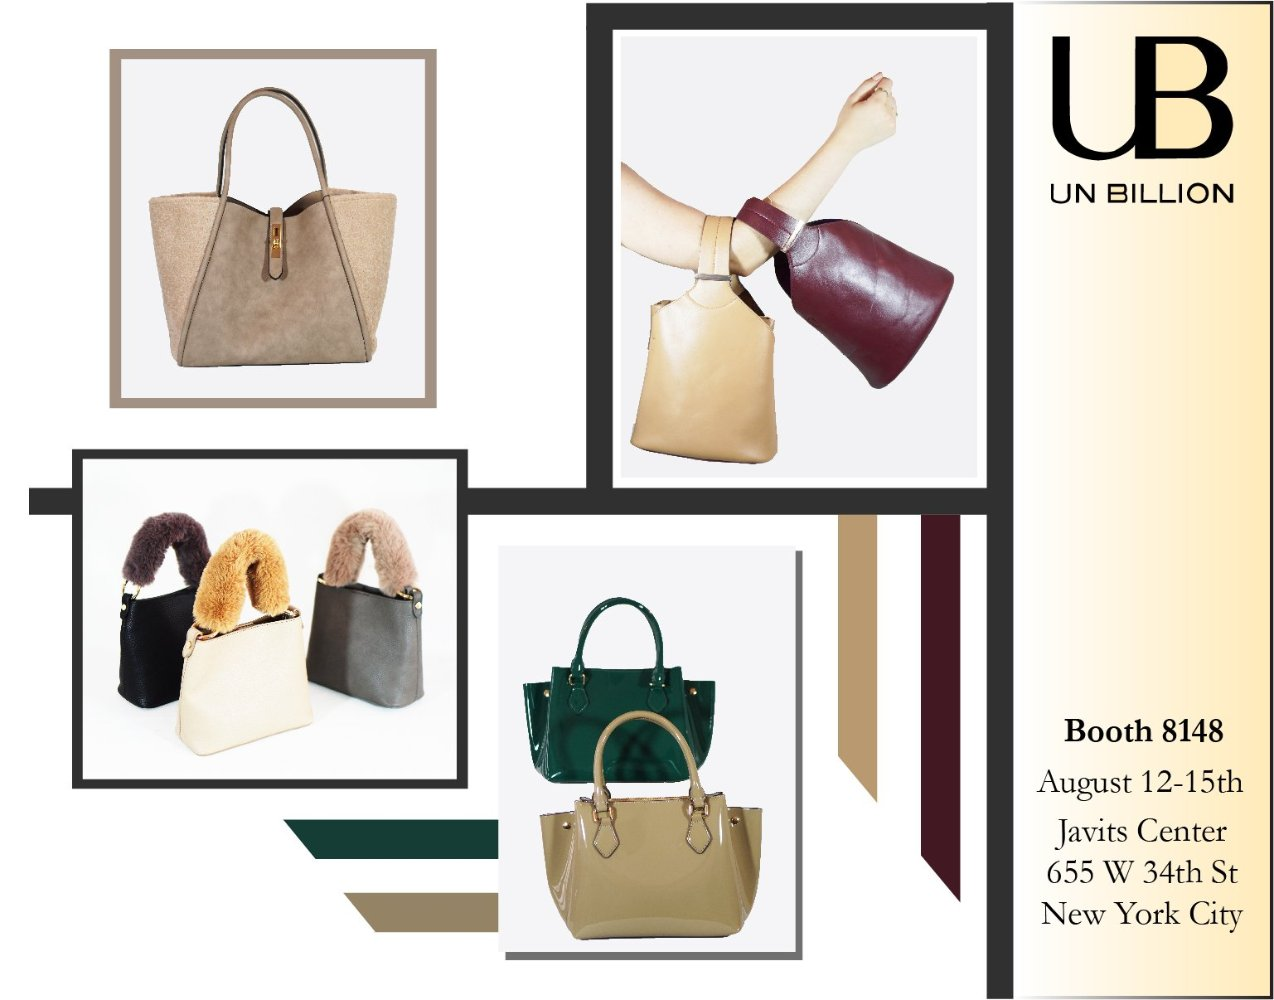 UN BILLION Handbags are at the Javits Booth 8148 NY NOW Tradeshow Giftshow  August 12-15